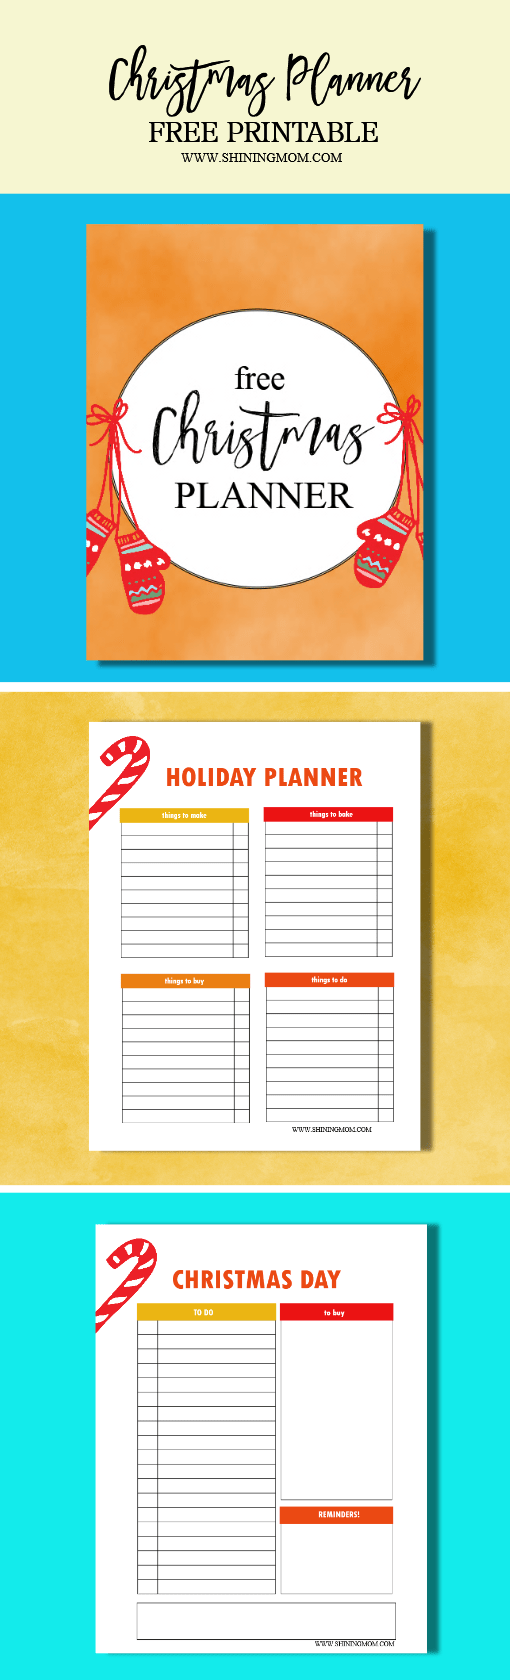 free-printable-christmas-planner-pinterest